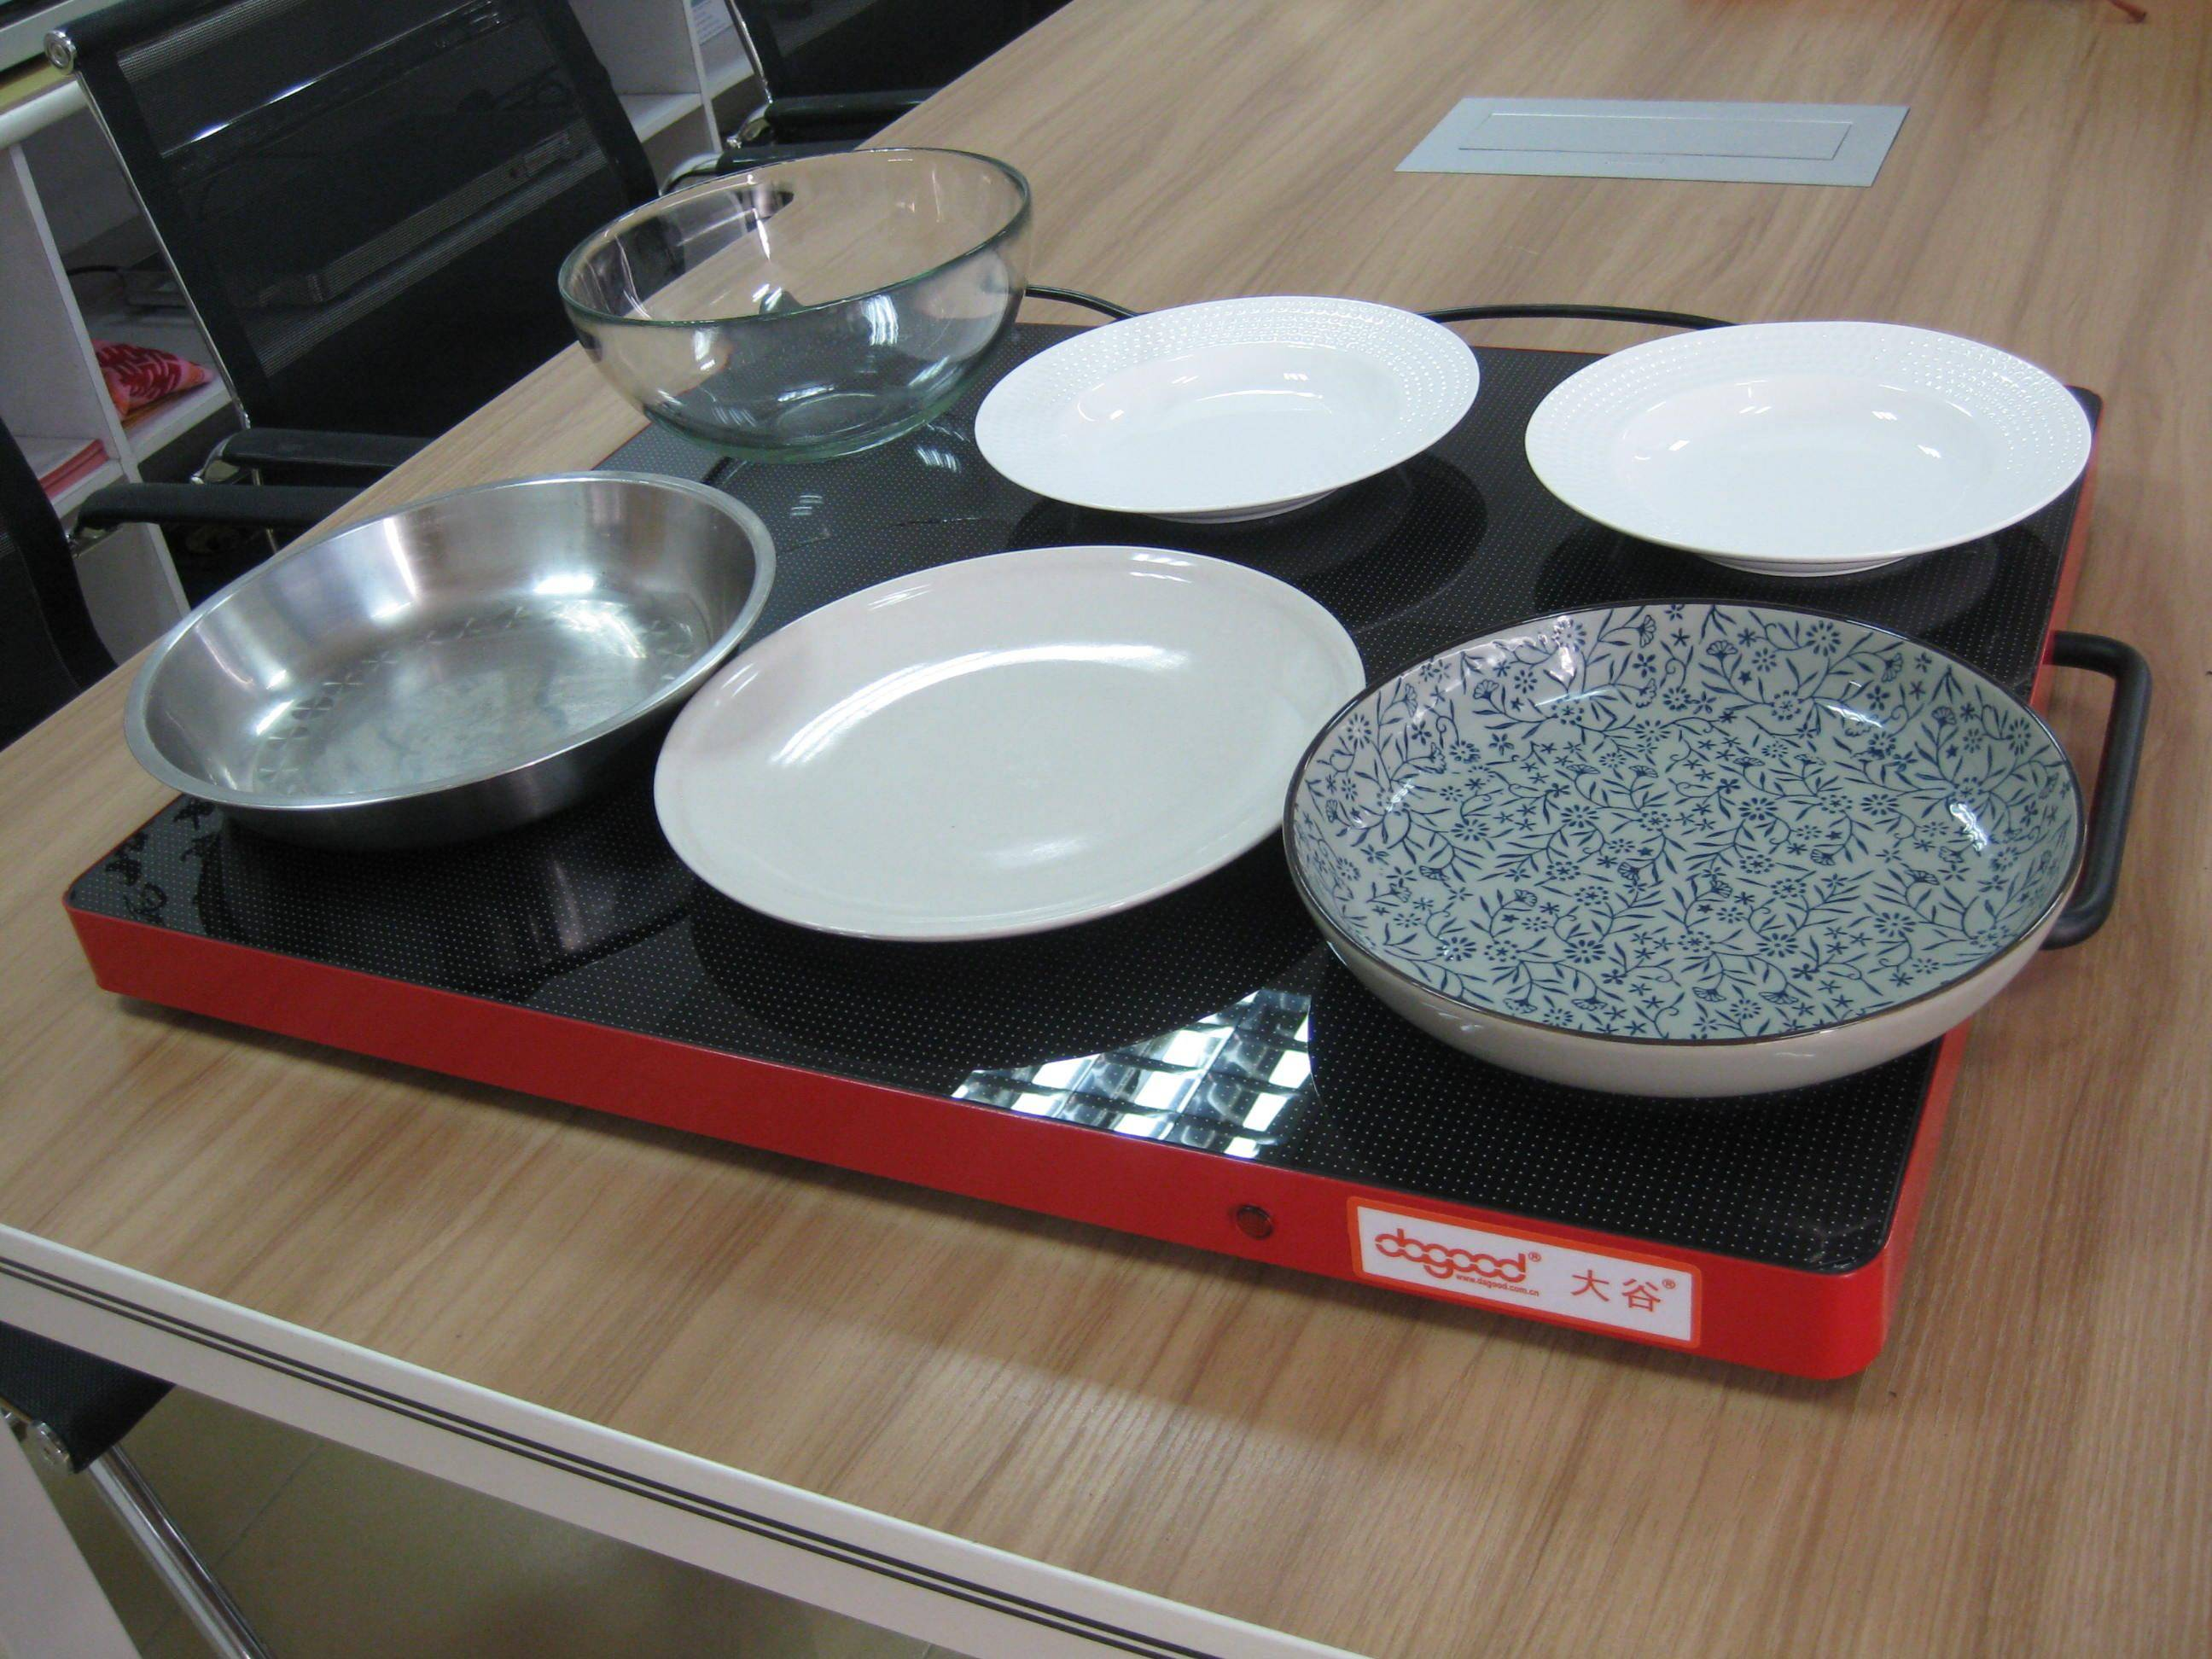 Warming tray keep food warm JG-KW02C